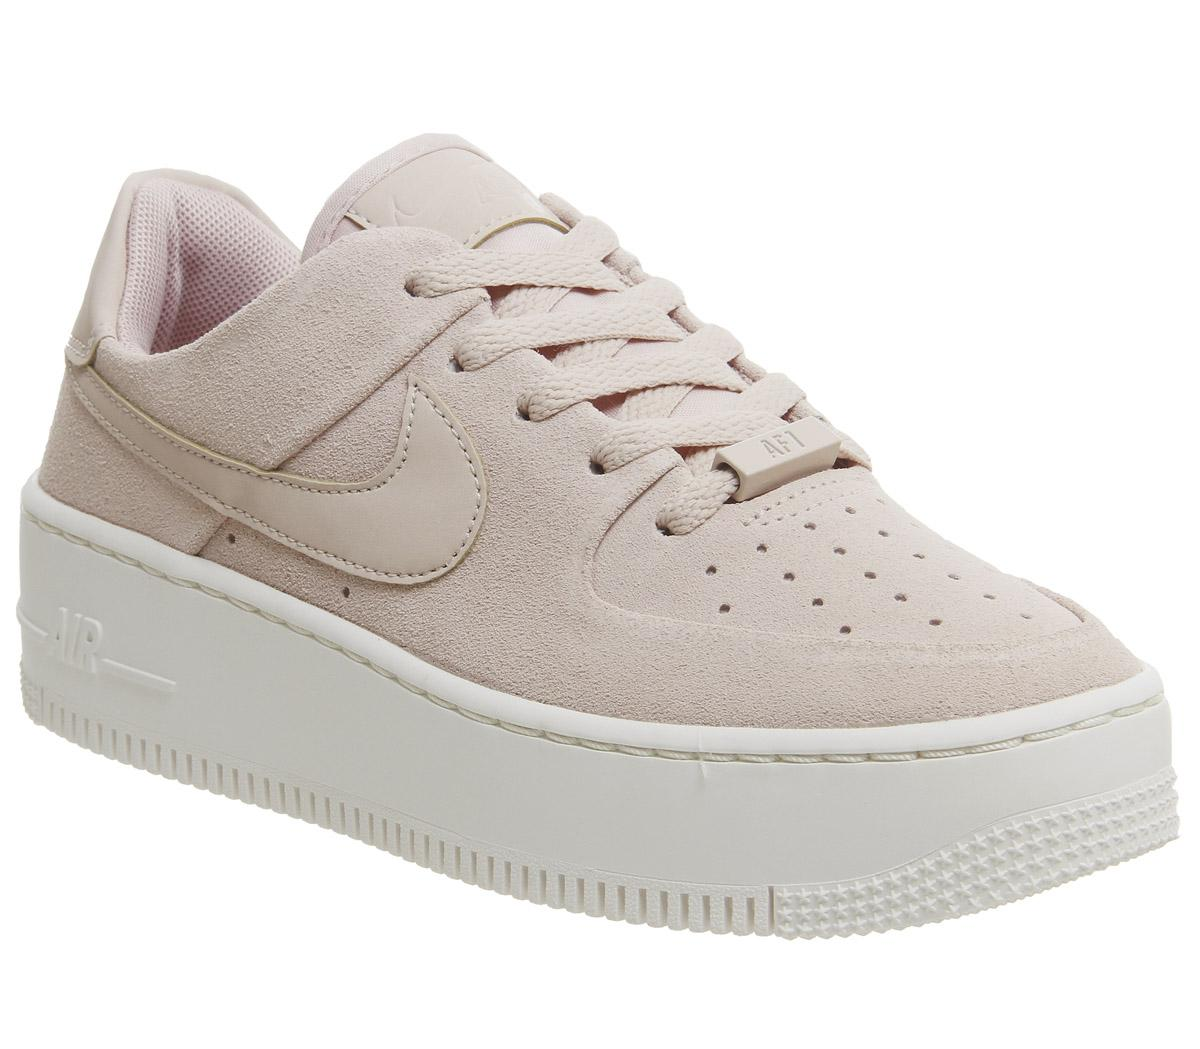 Nike Air Force 1 Sage Low Particle Beige For Sale